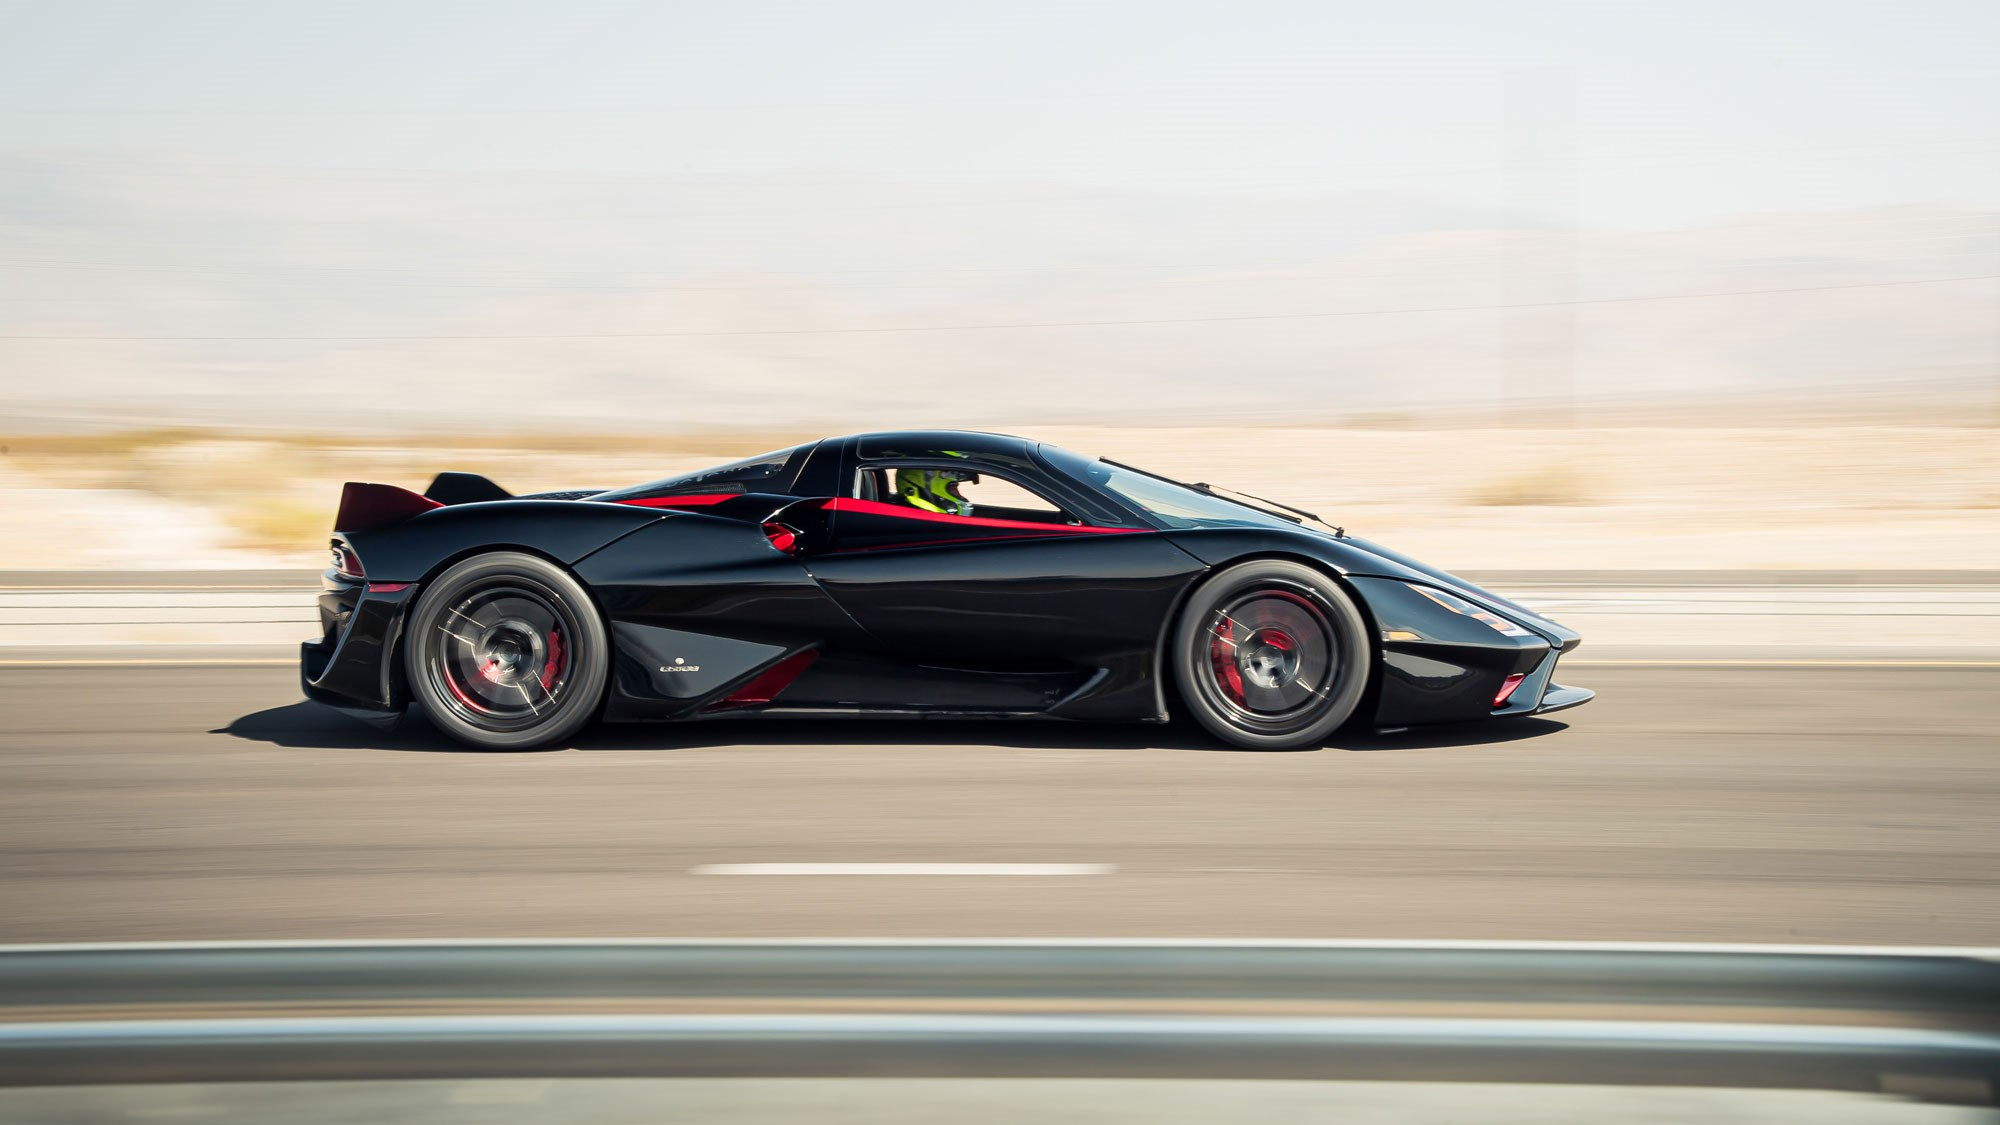 Bugatti who? 508,73 km/h SSC Tuatara is fastest production vehicle!